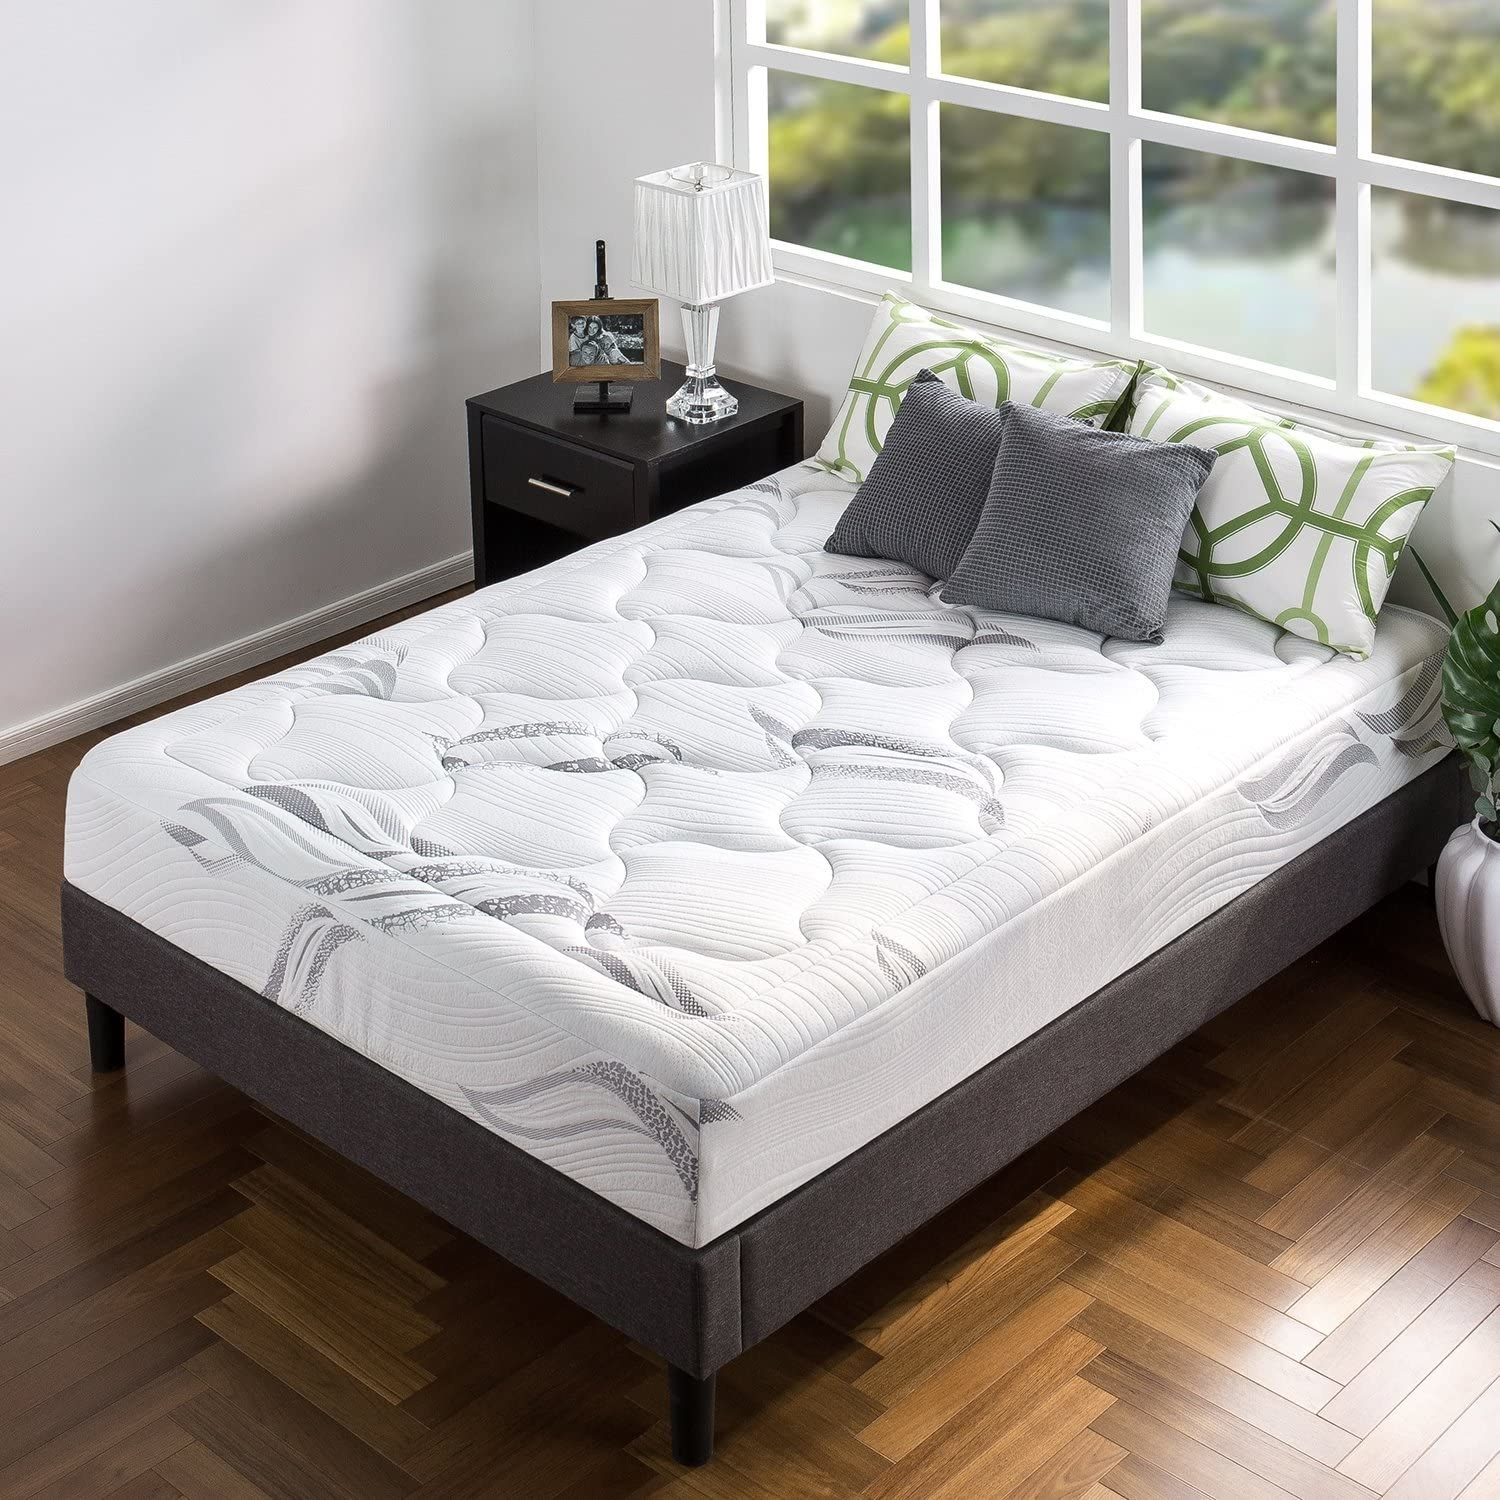 shot of a bed with the mattress on it with pillows but no other bedding